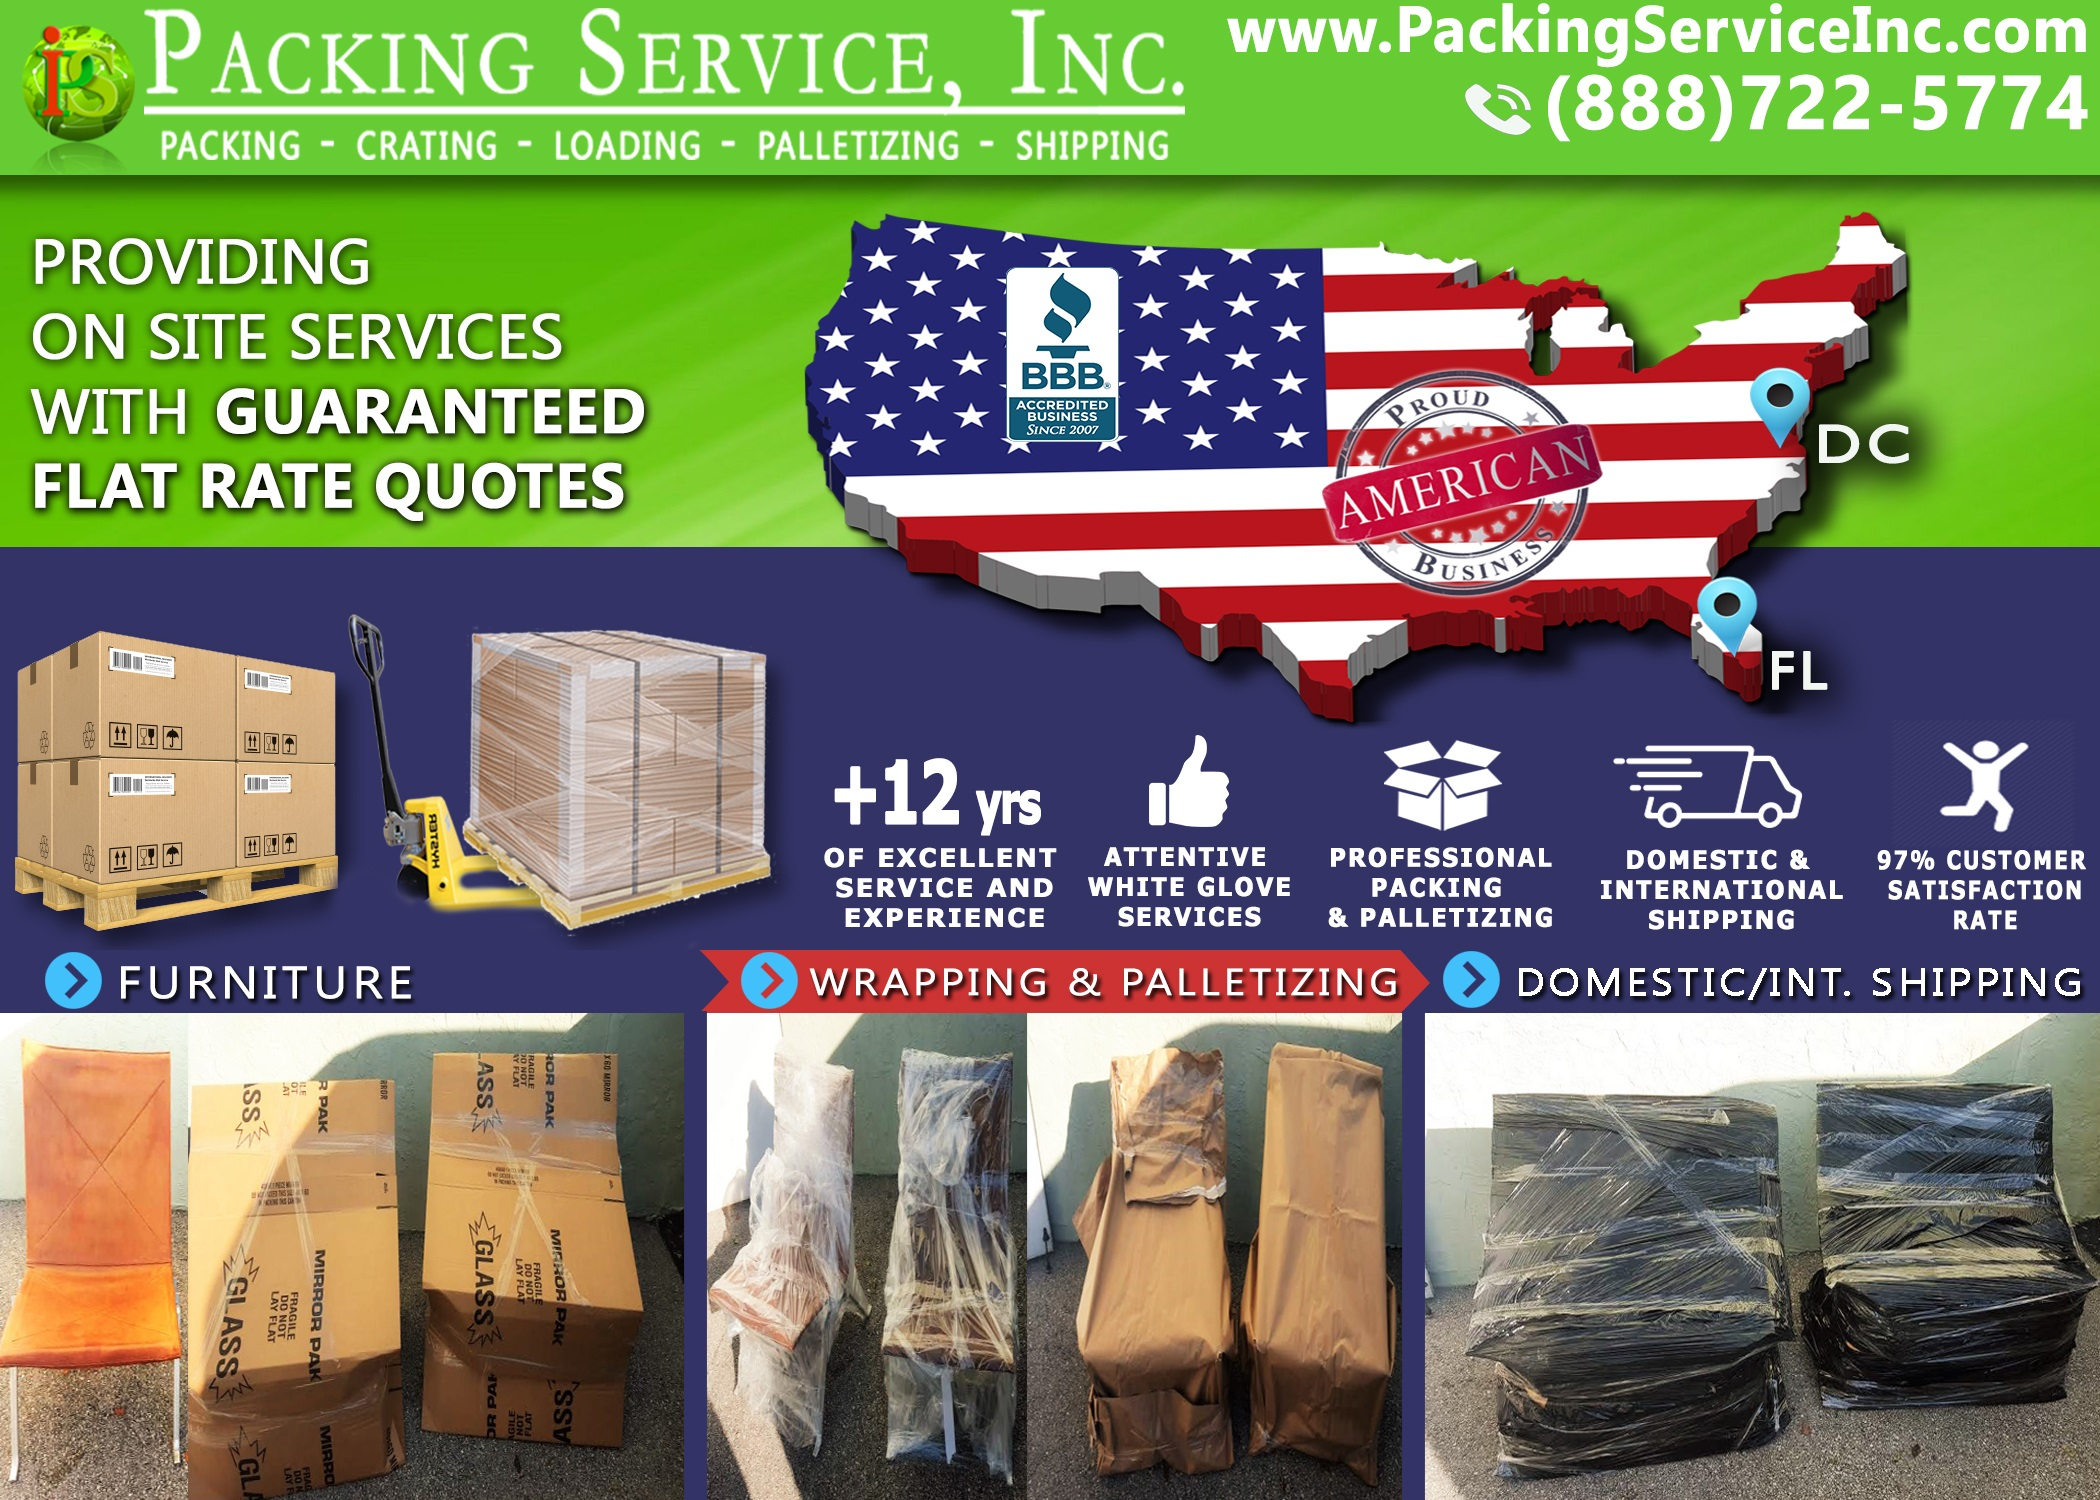 wrapping-2-chairs-and-shipping-from-florida-to-dc-with-packing-service-inc-822